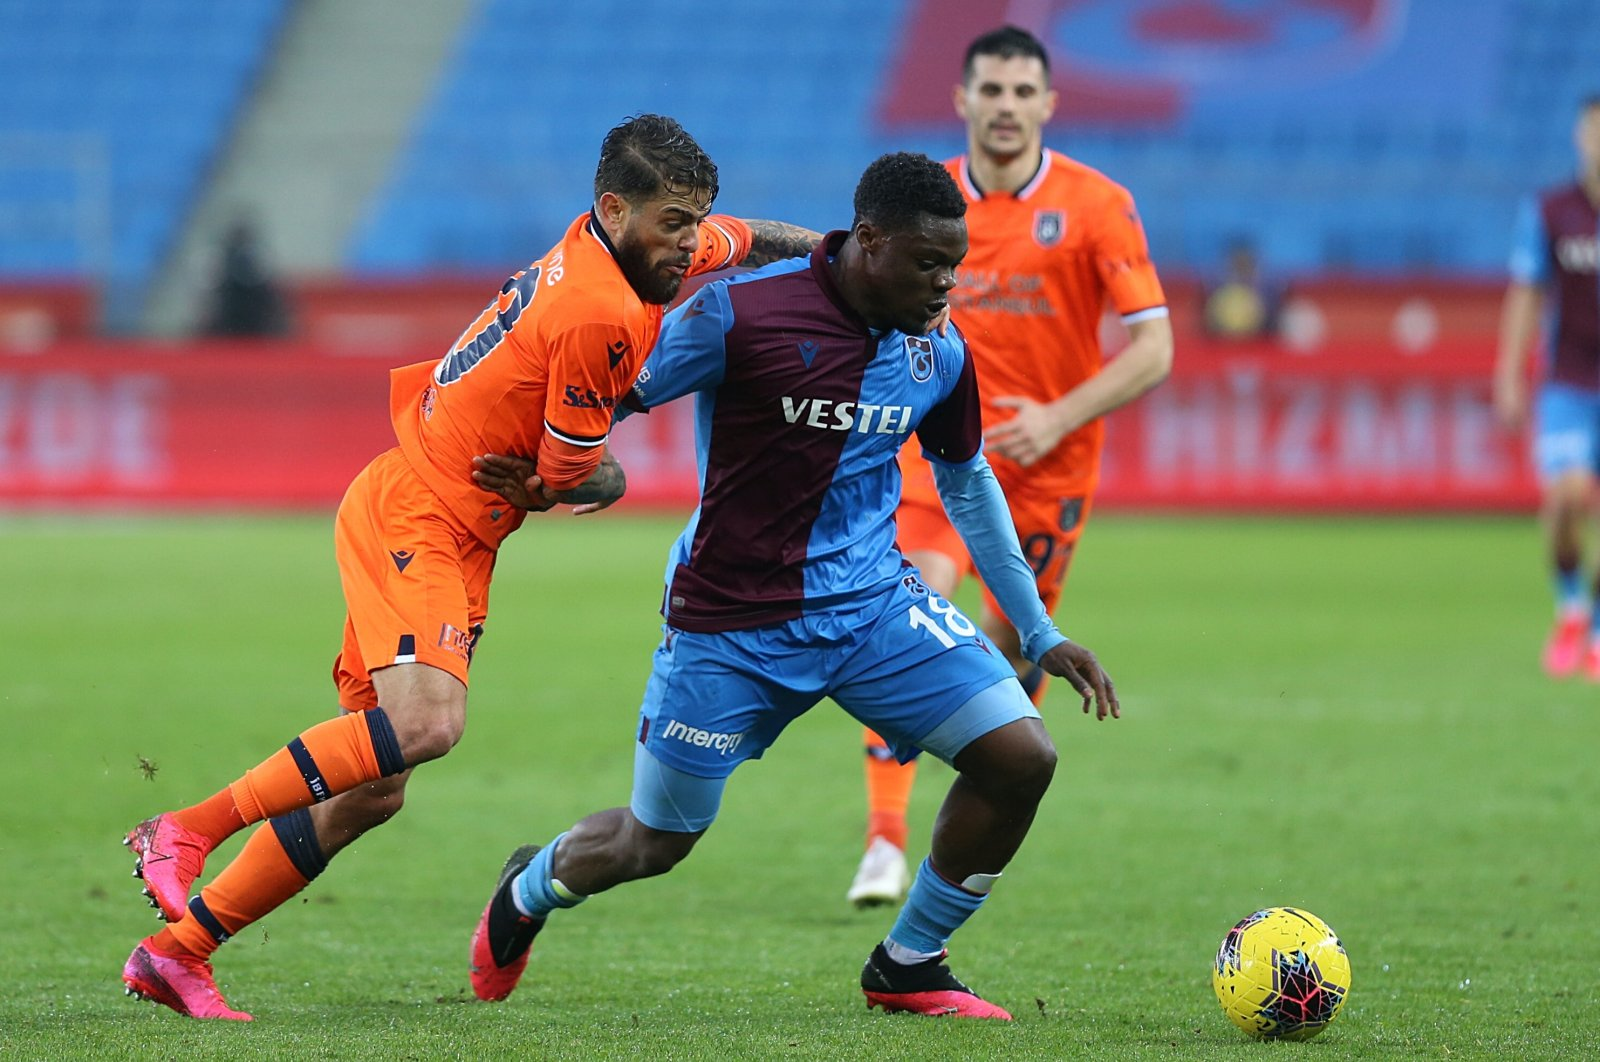 Başakşehir's Junior Caicara (L) competes for the ball with Trabzonspor's Caleb Ekuban (C) during a Süper Lig match in Trabzon, Turkey, March 15, 2020. (AA Photo)